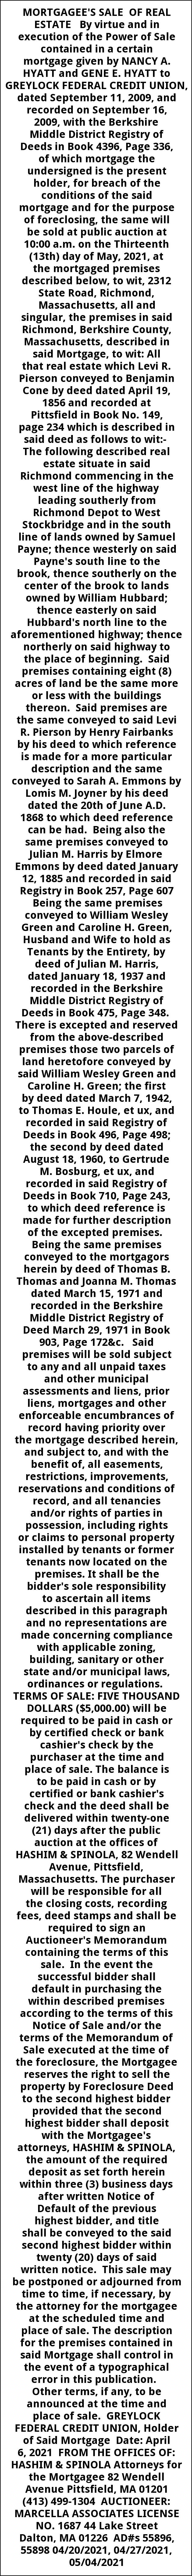 Mortagee's Sale of Real Estate